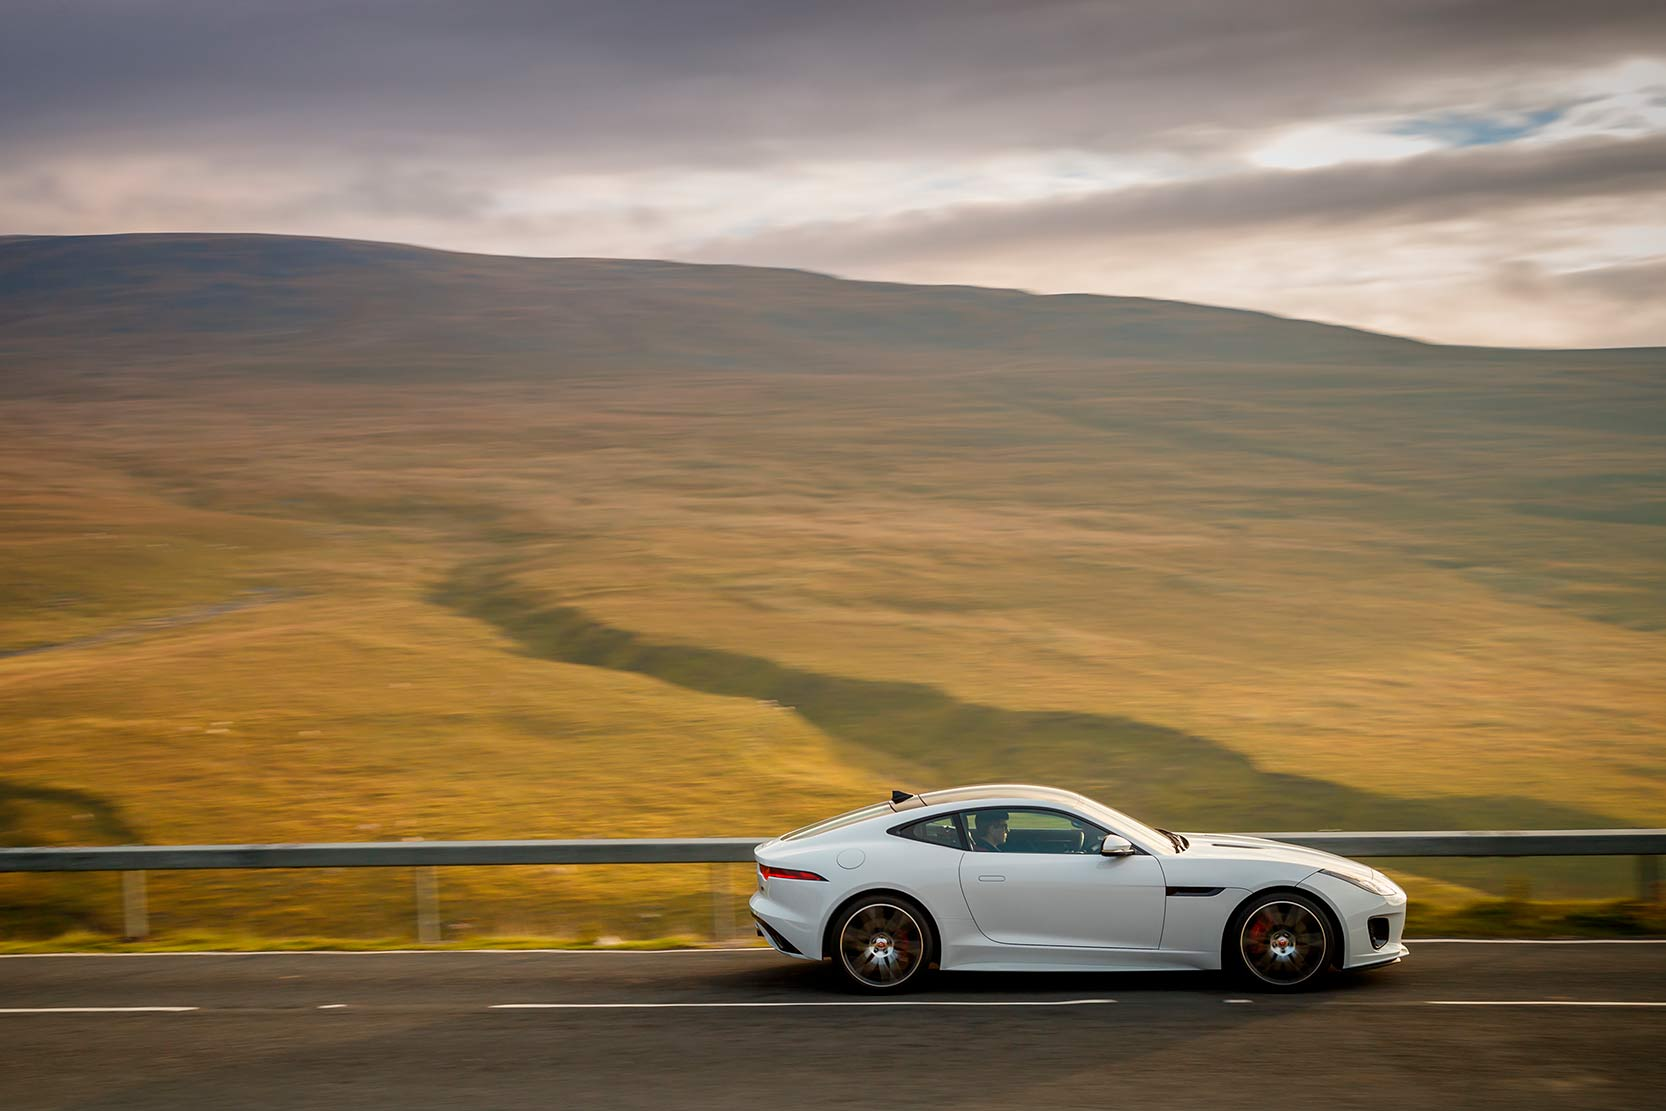 Exterieur_Jaguar-F-Type-Chequered-Flag_10